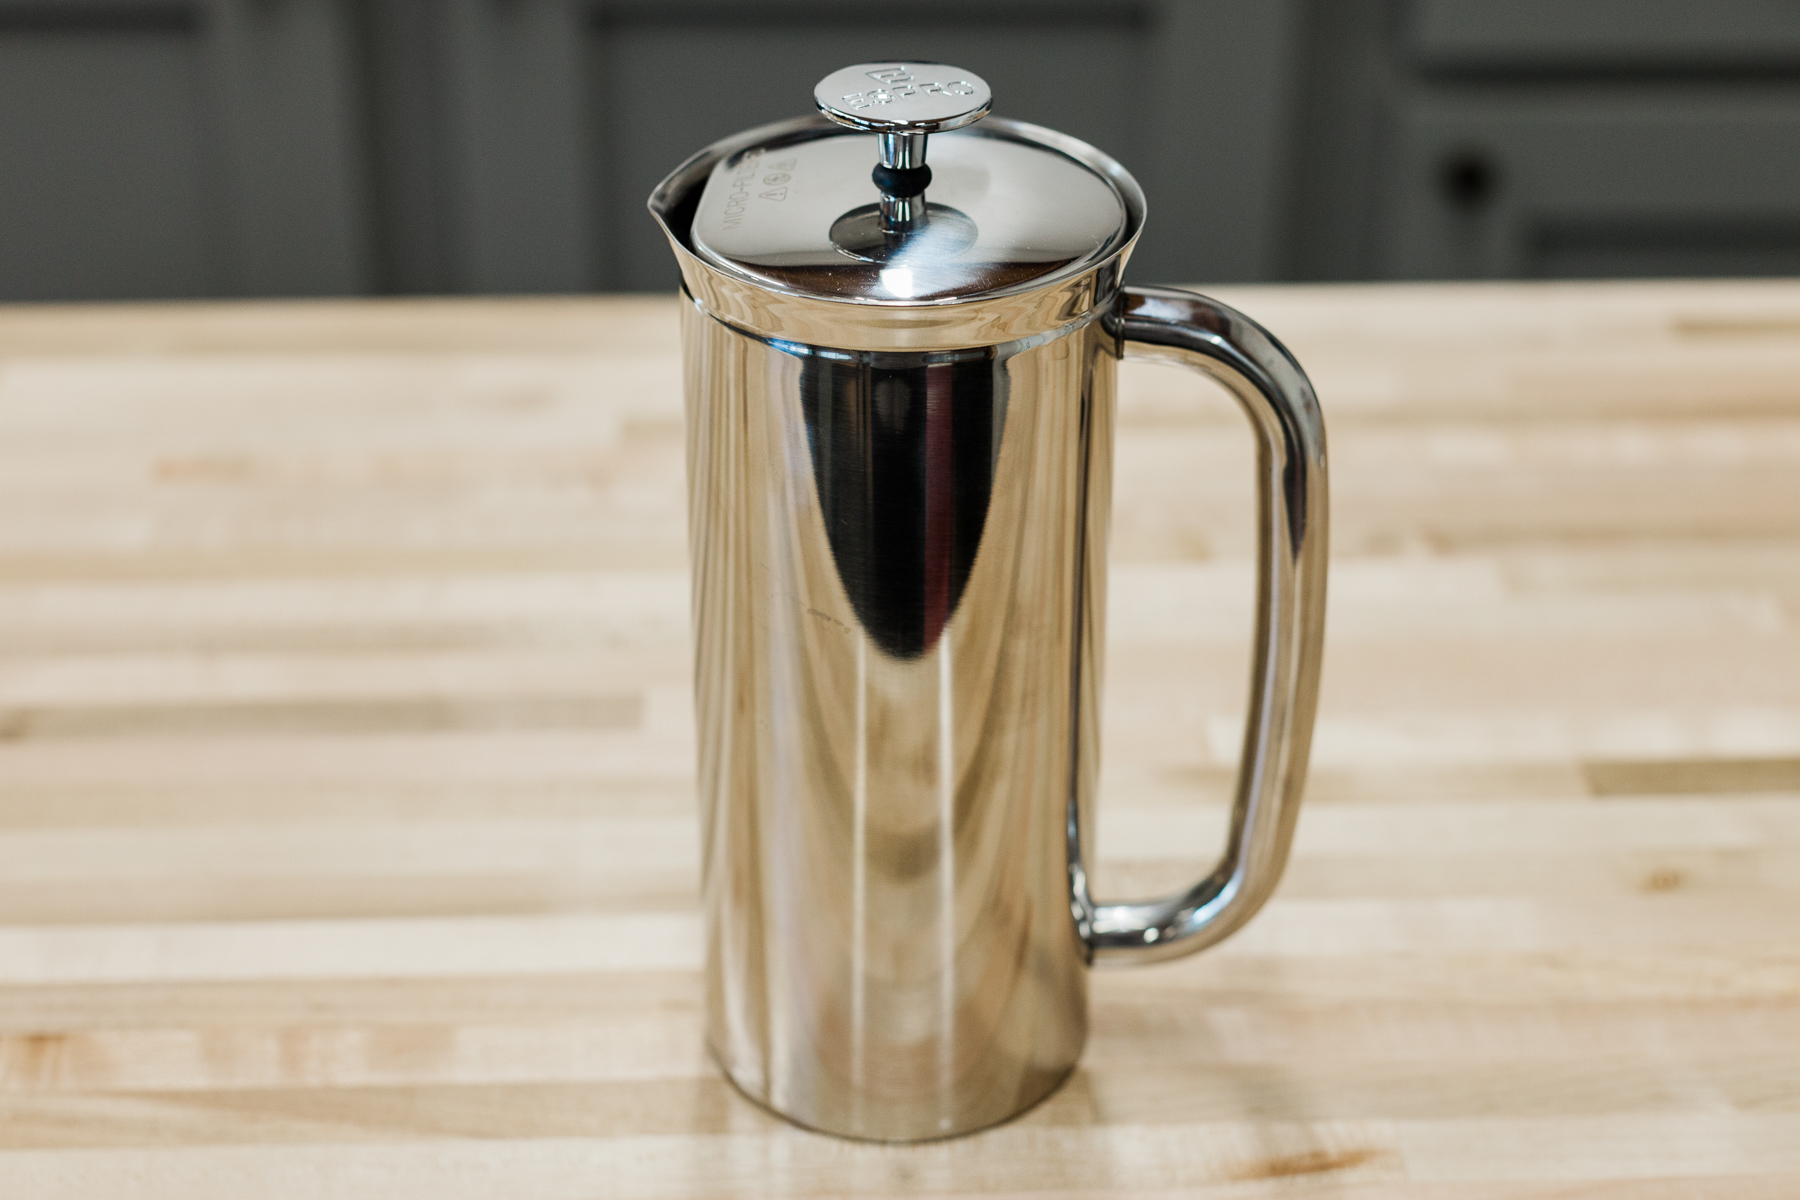 18 ounce double-walled stainless steel Espro Press.